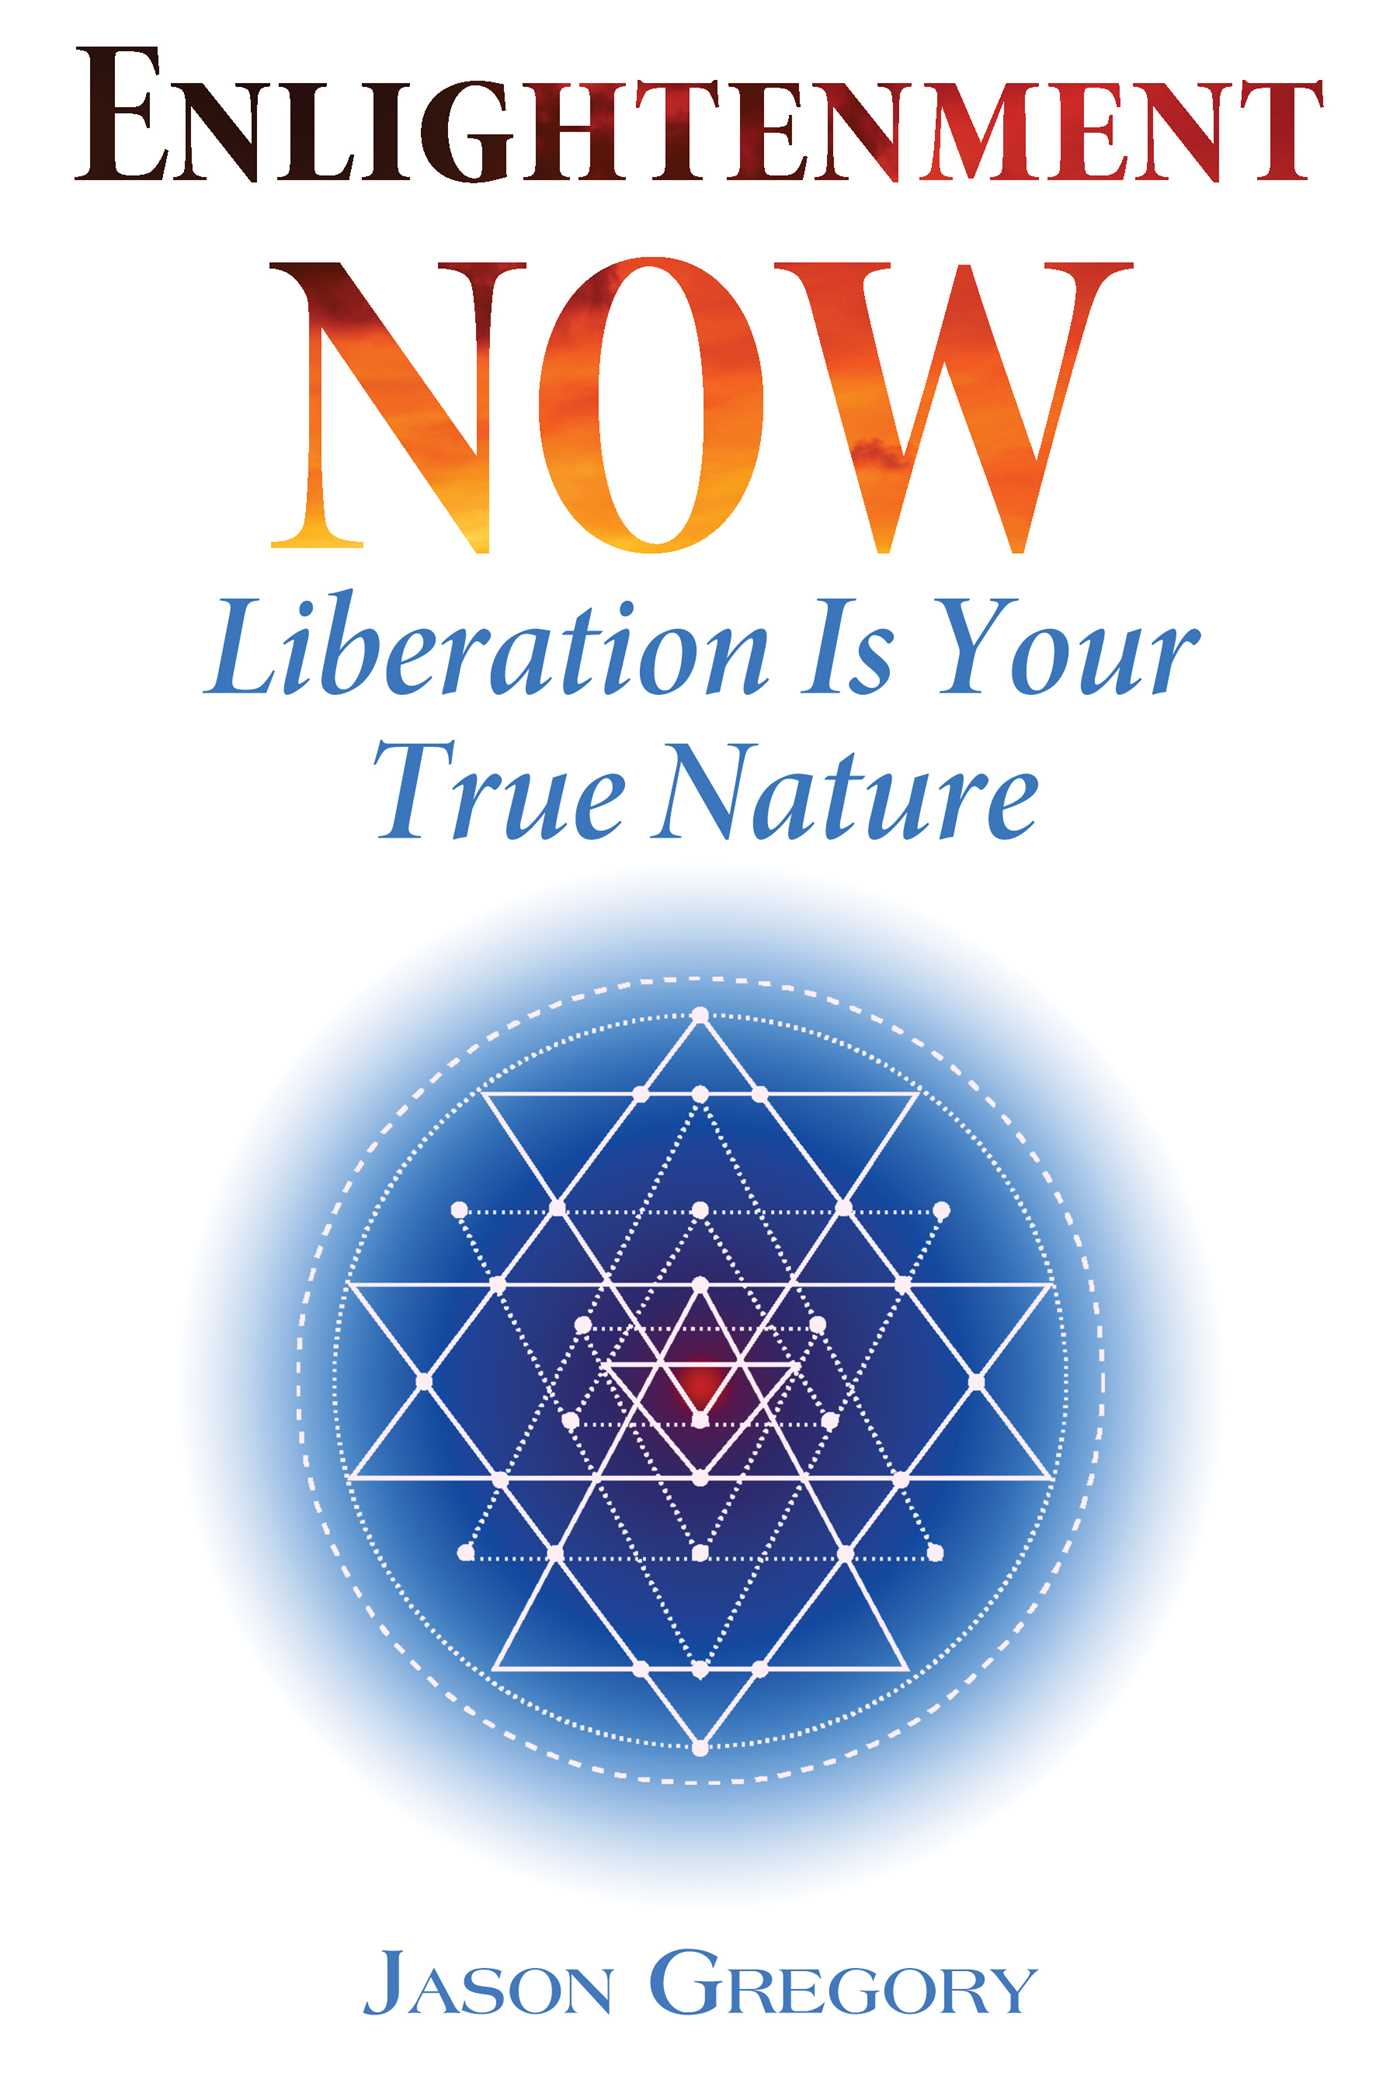 Enlightenment now 9781620555910 hr